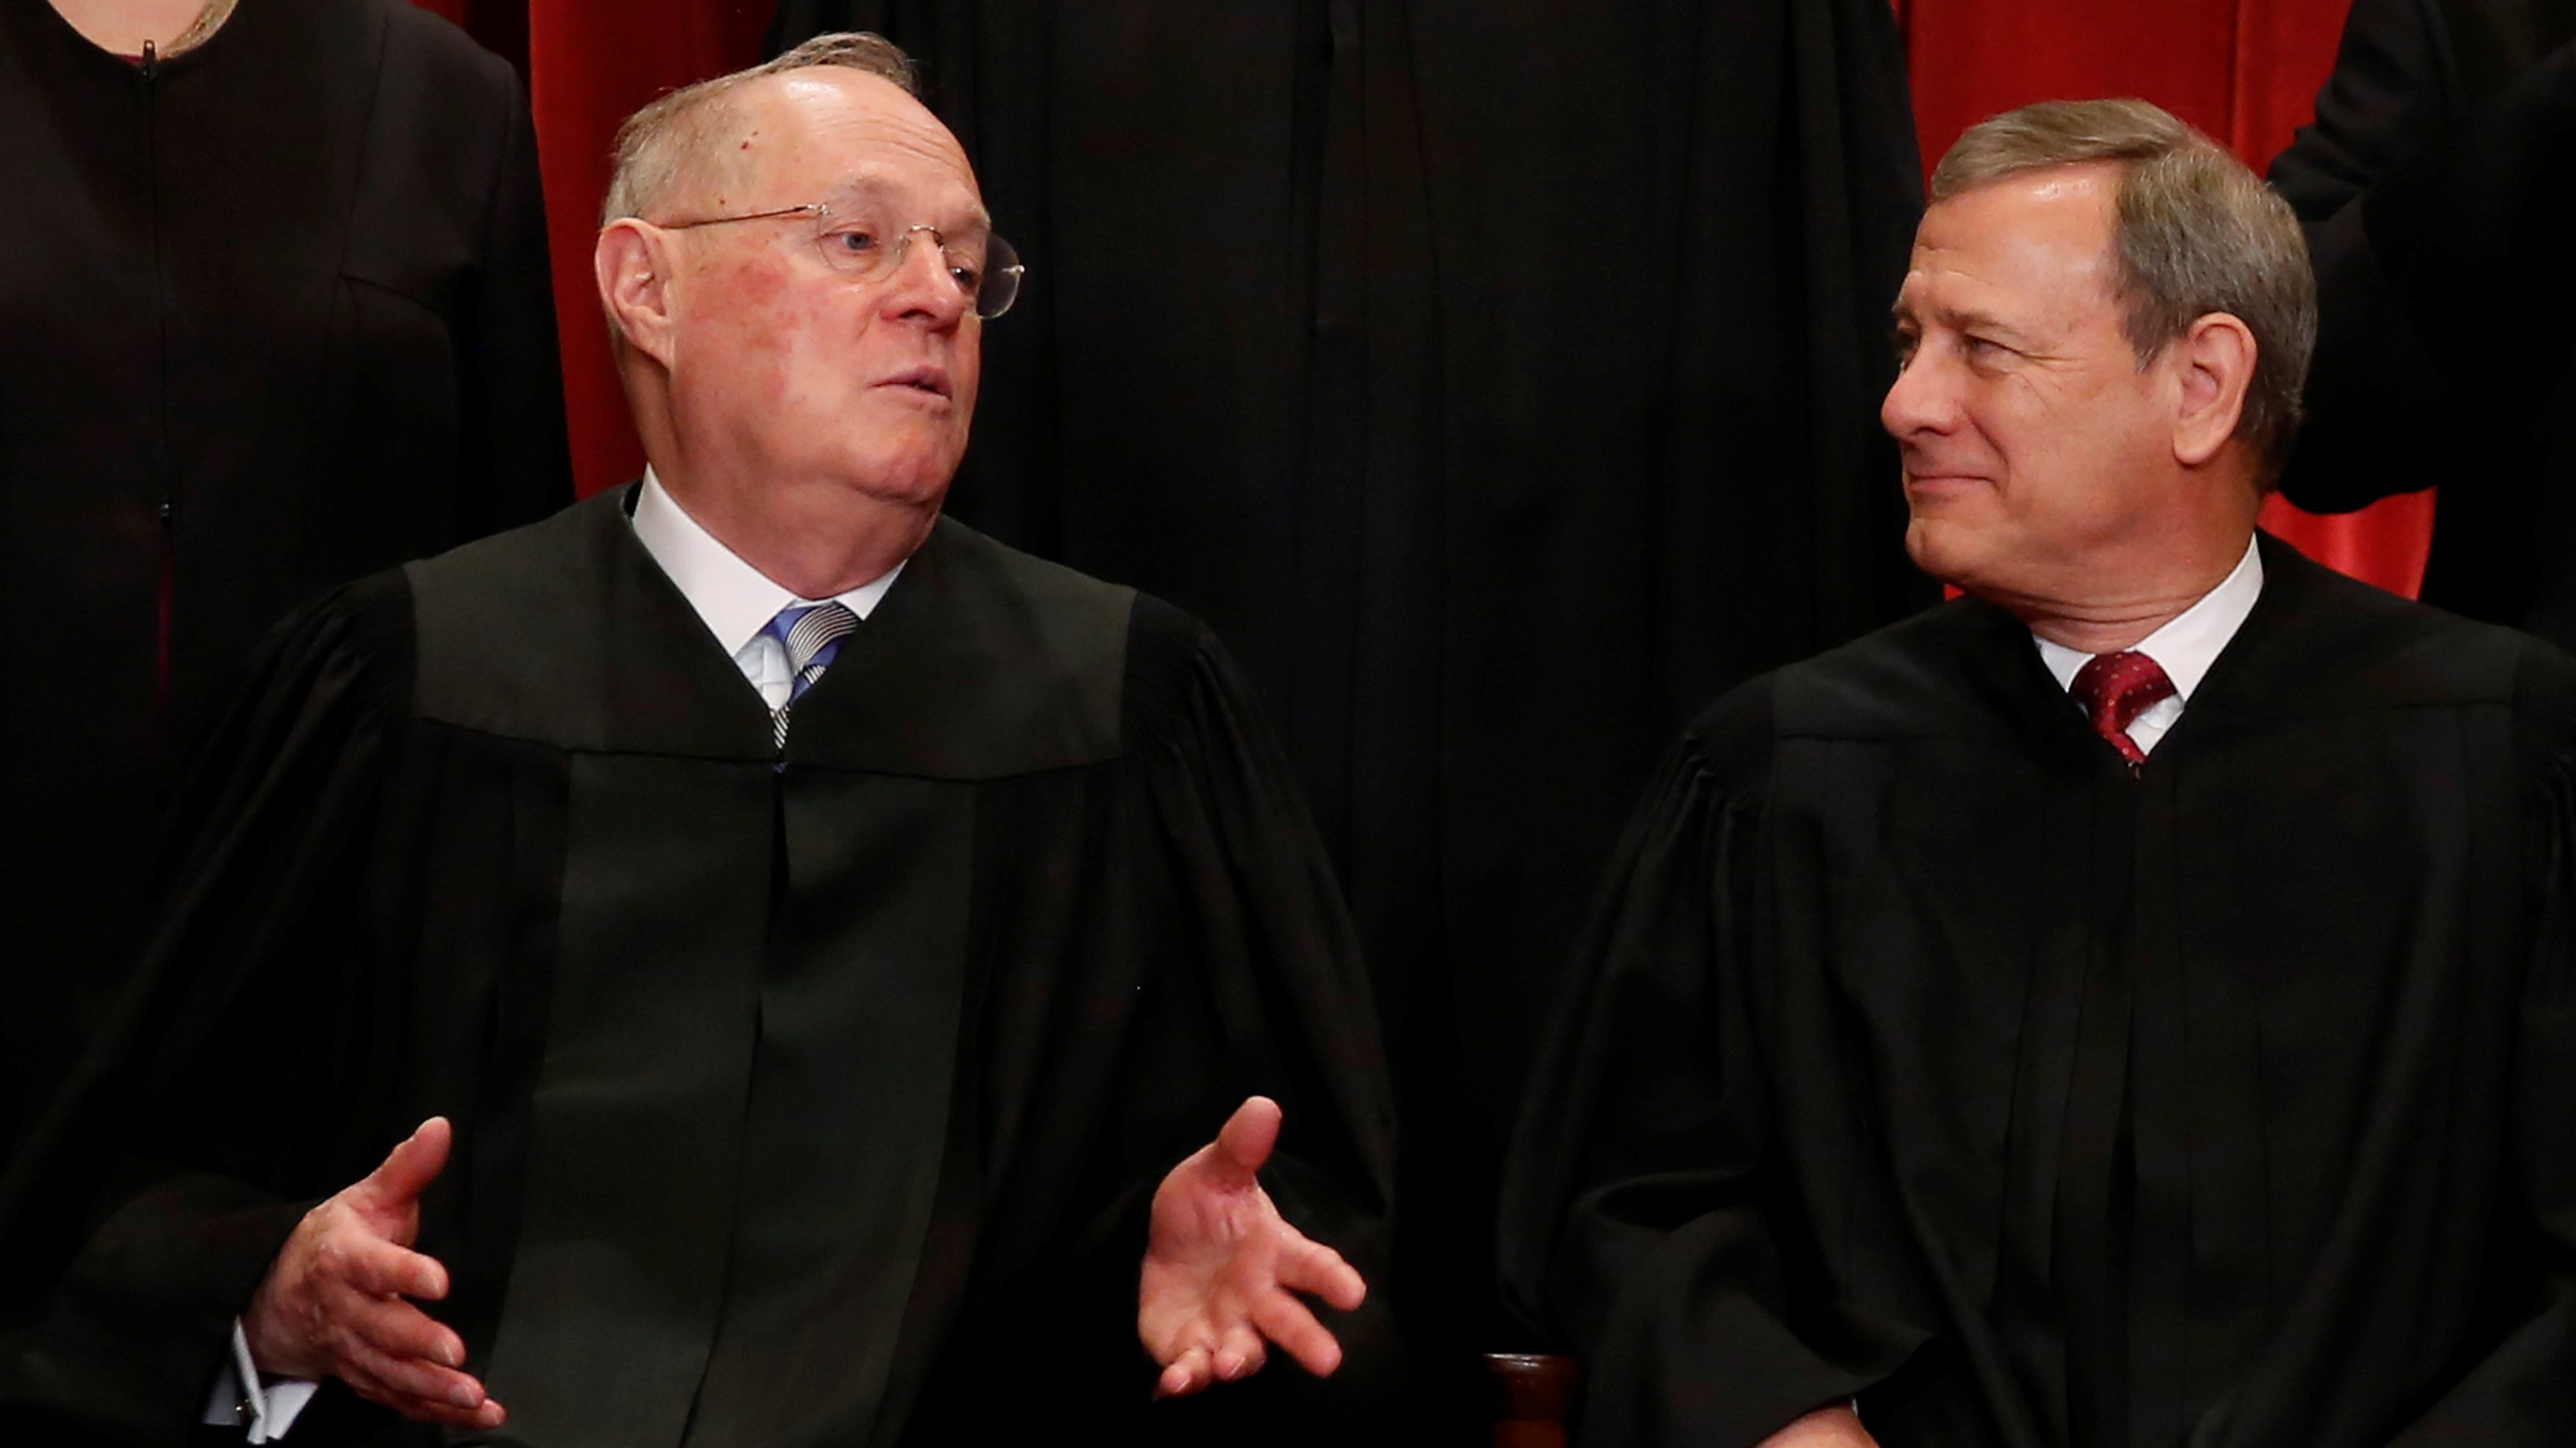 Chief justice John Roberts (right) talks with justice Anthony Kennedy (left) during a photo shoot at the United States Supreme Court.